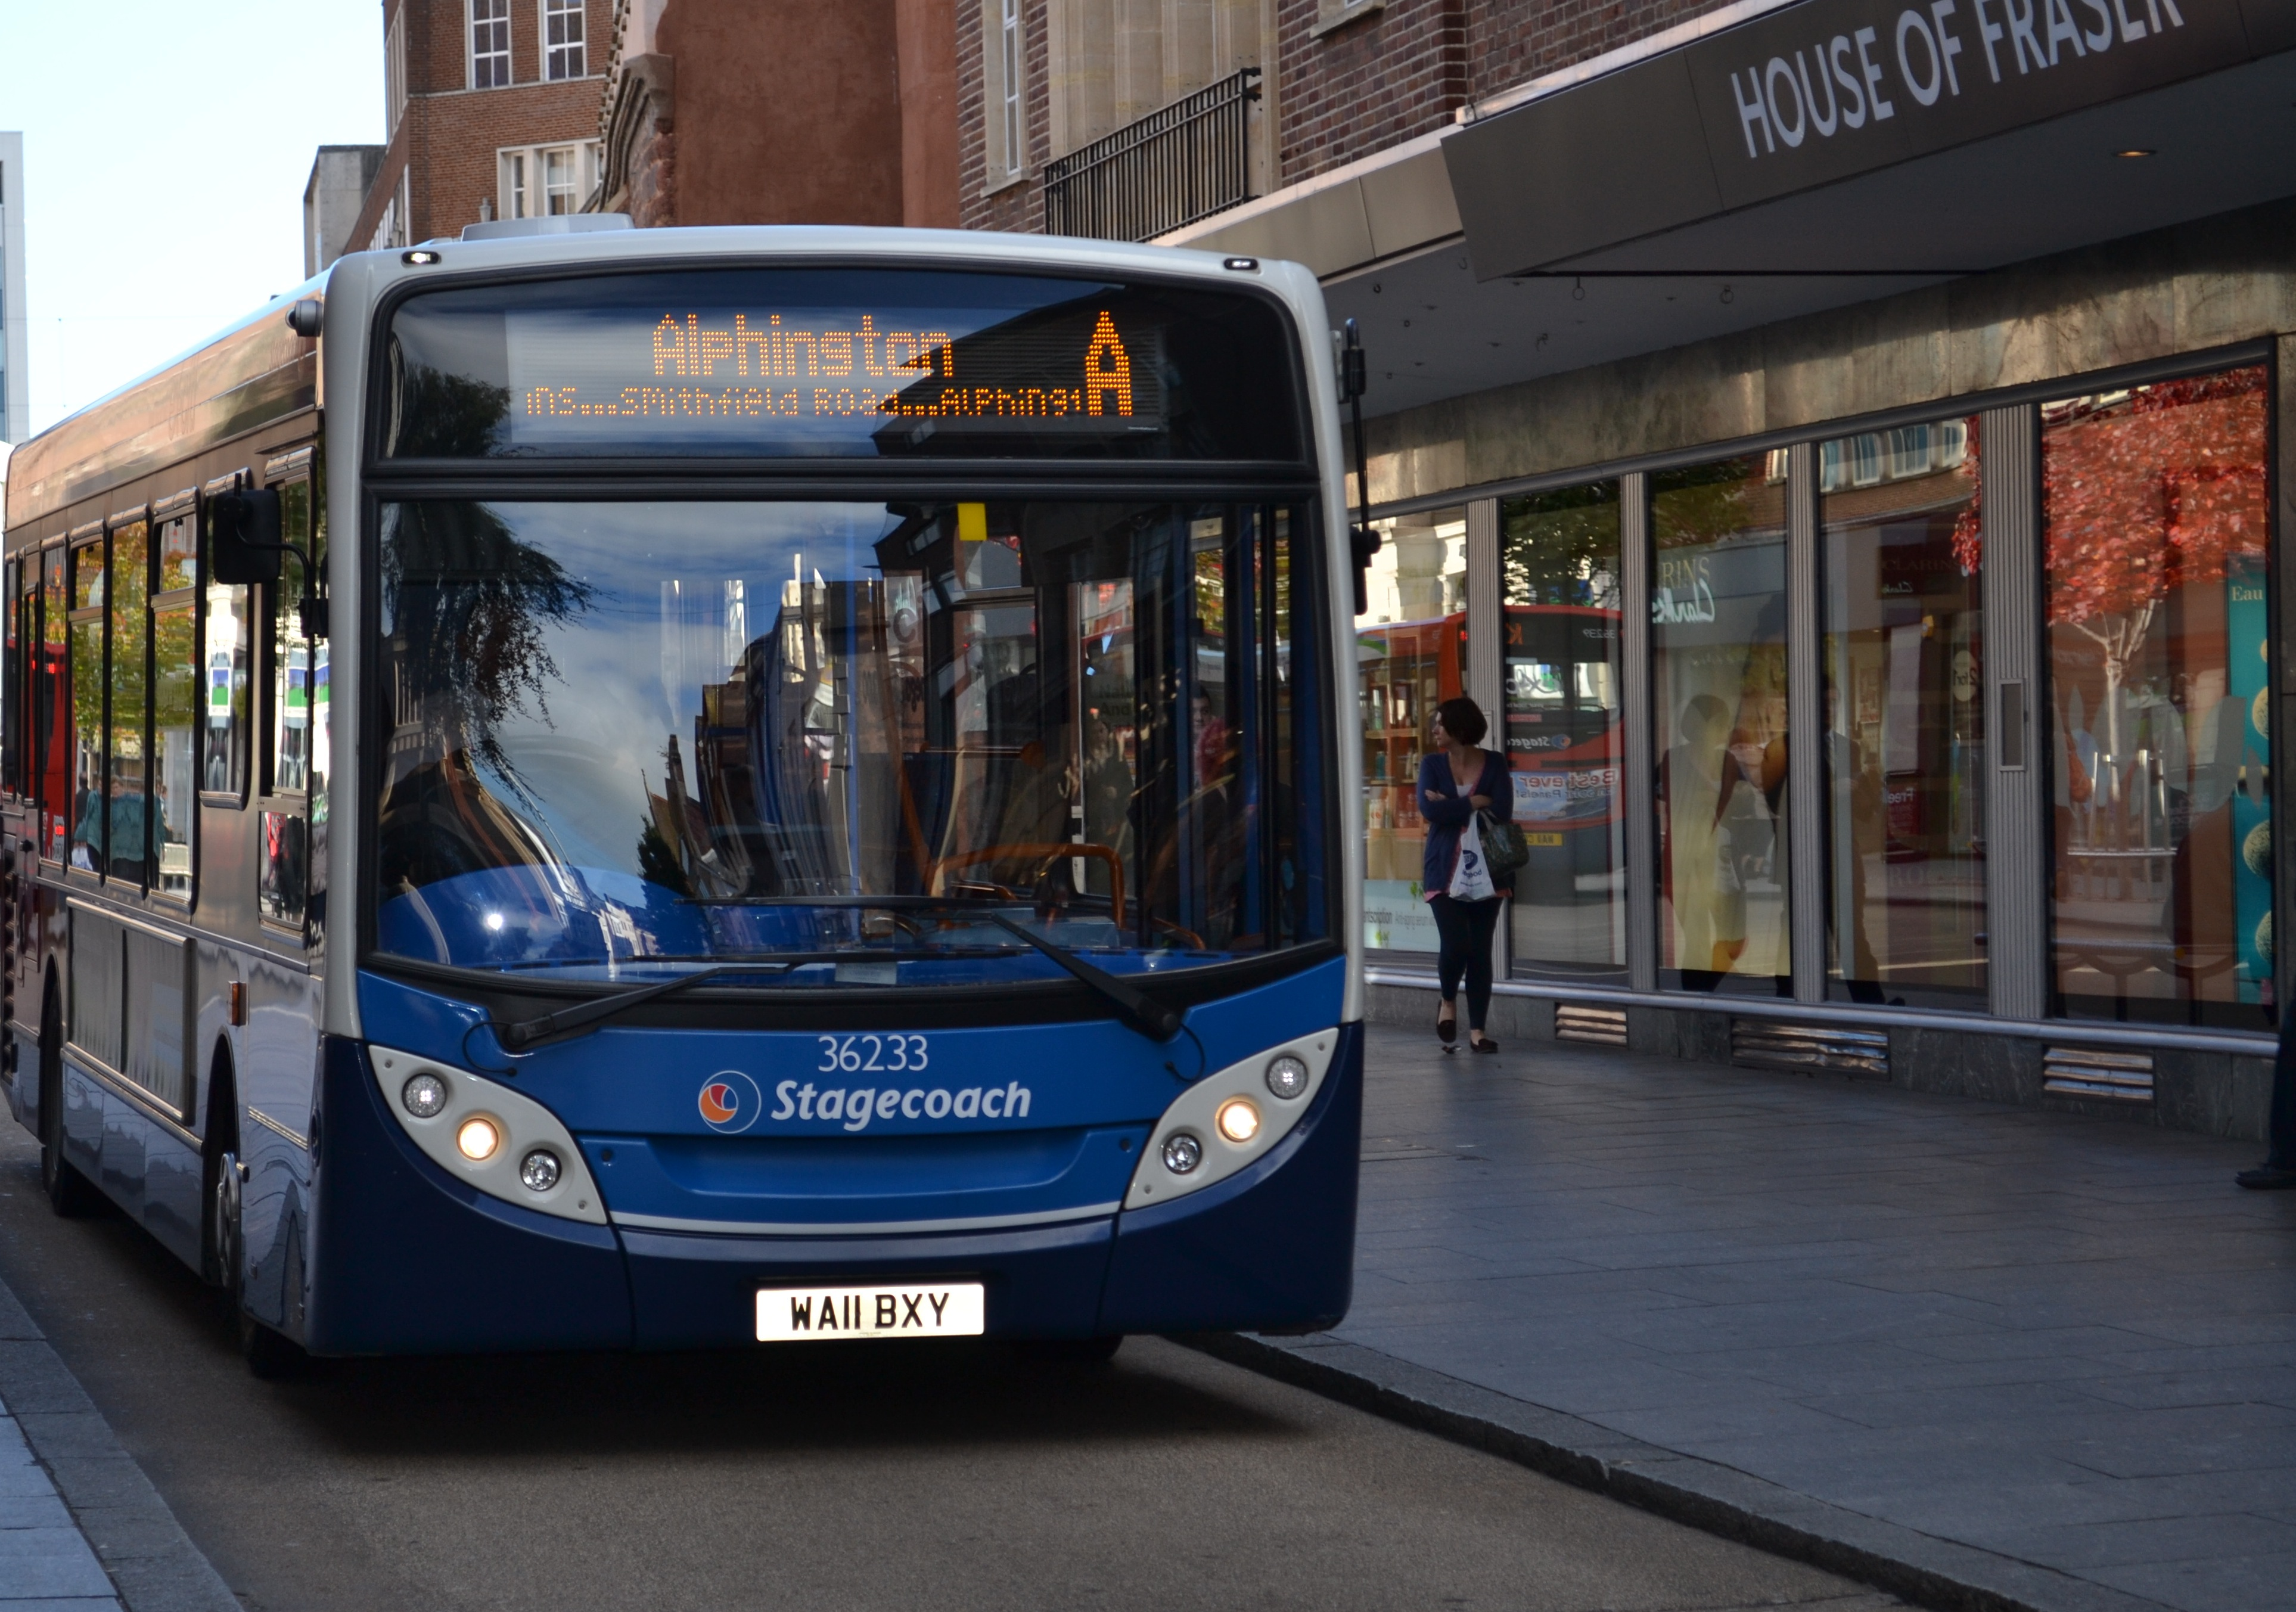 https://www.theexeterdaily.co.uk/sites/default/files/field/image/Stagecoach-1_1.JPG